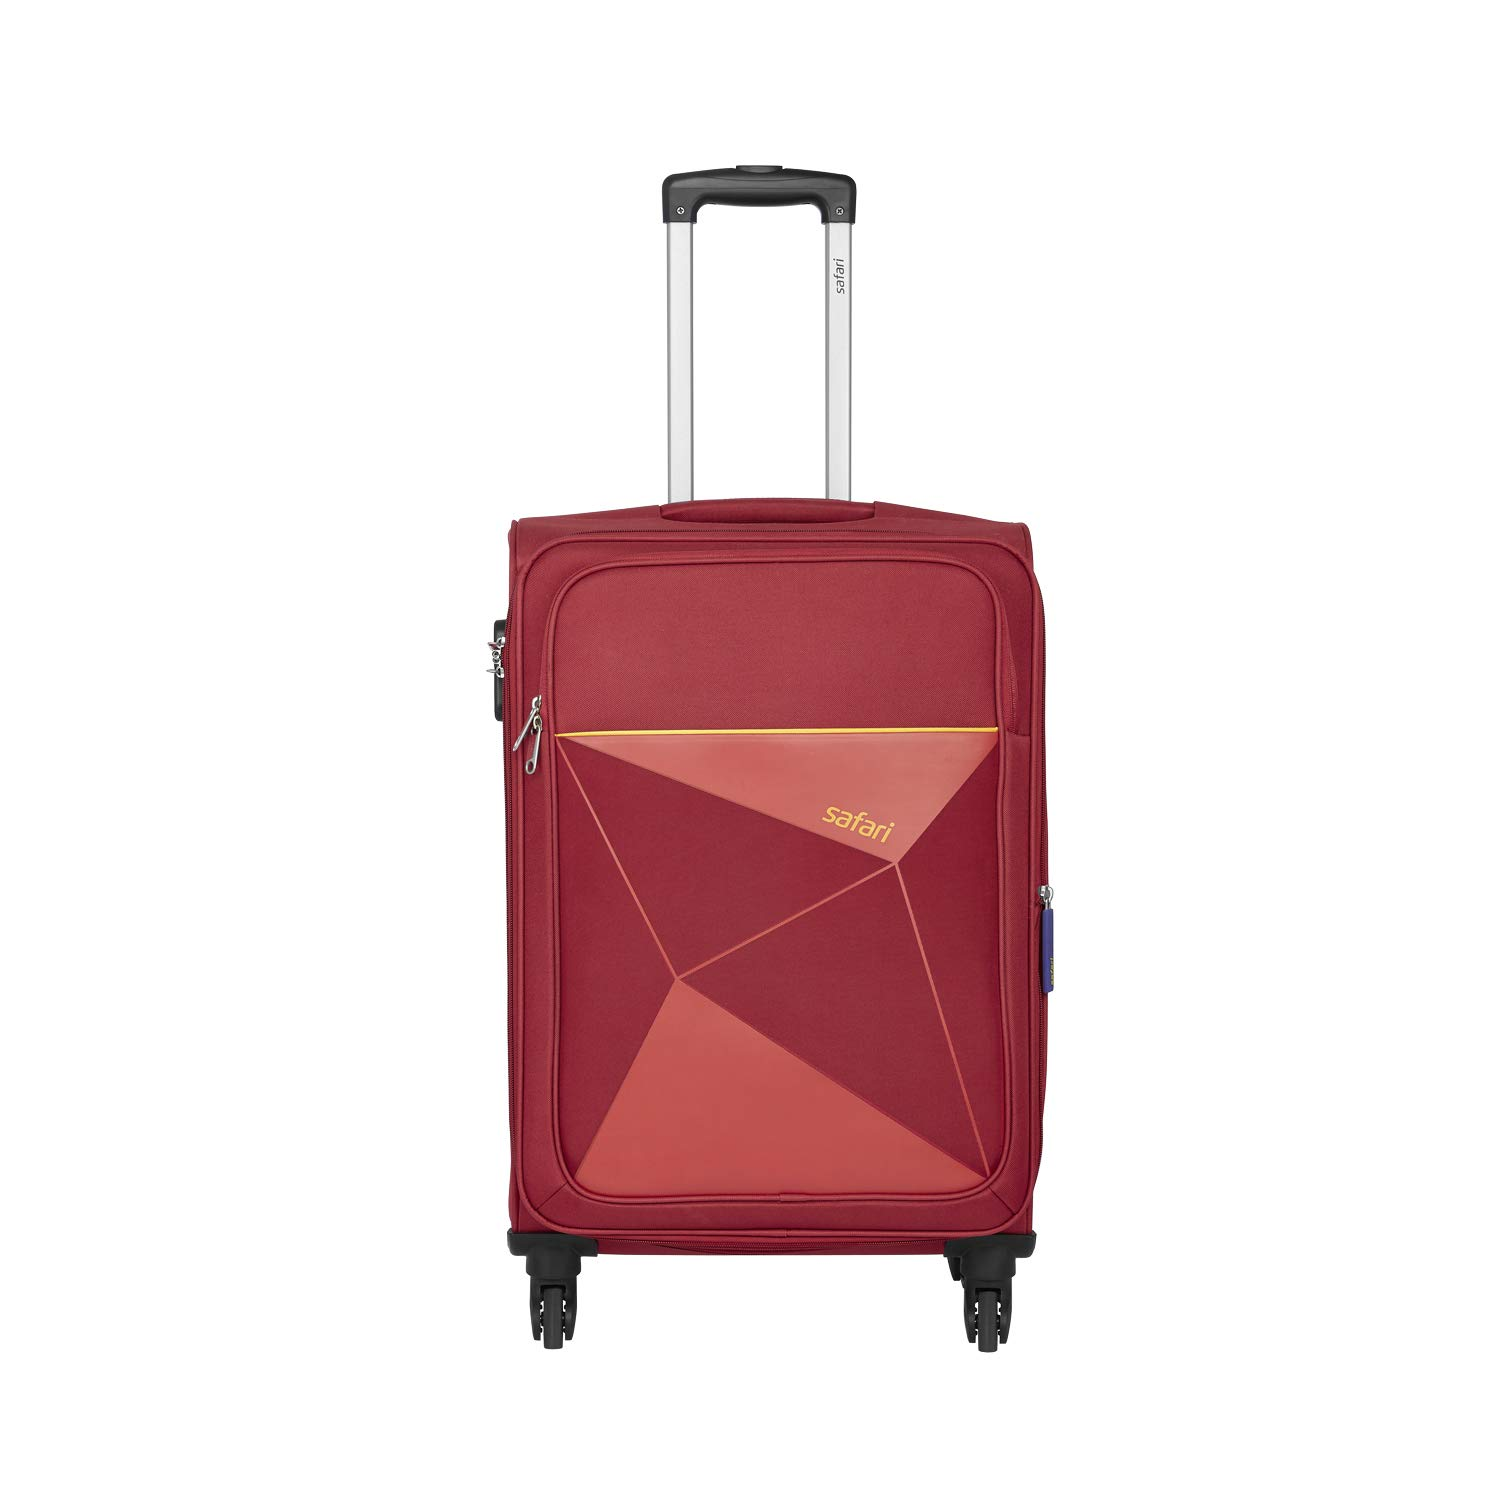 Safari Polyester 77 cms Red Softsided Check-in Luggage (PRISMA754WRED)